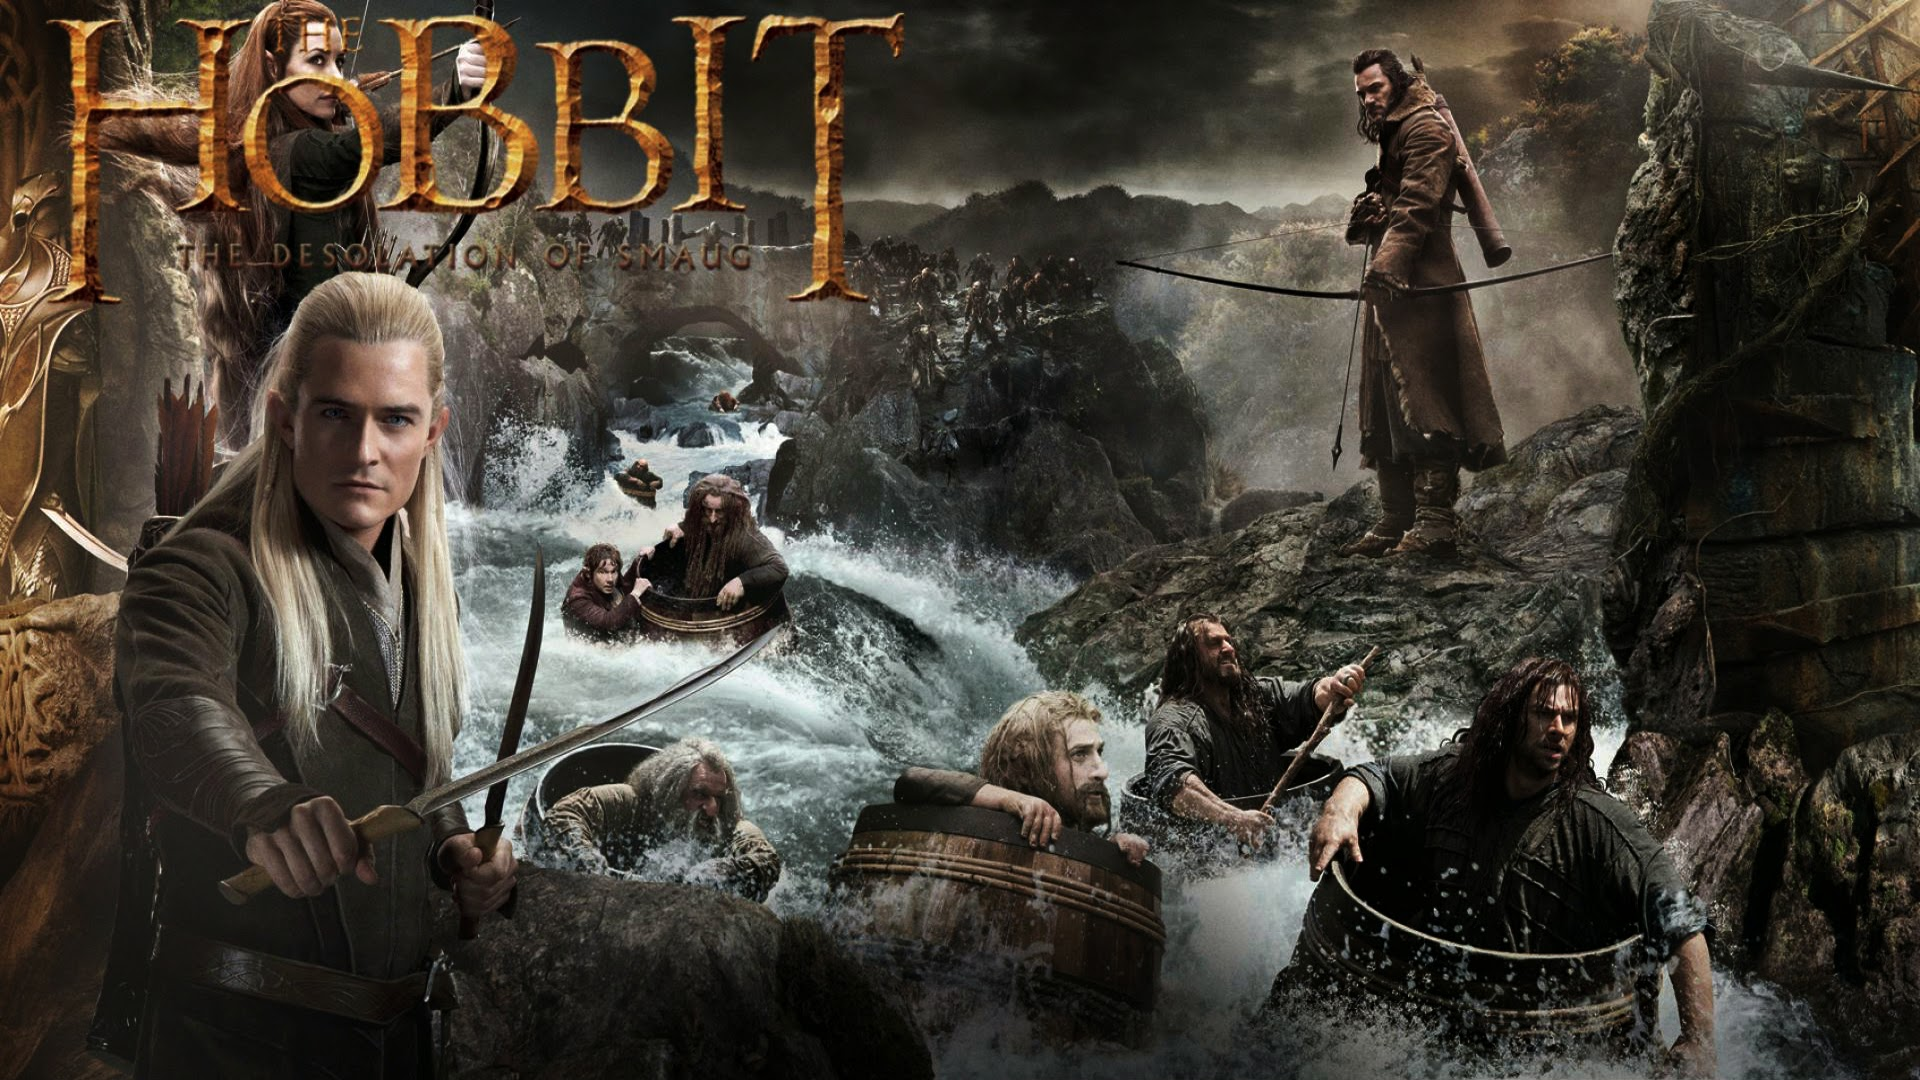 New The Hobbit The Desolation of Smaug Wallpaper HiresMOVIEWALLcom 1920x1080